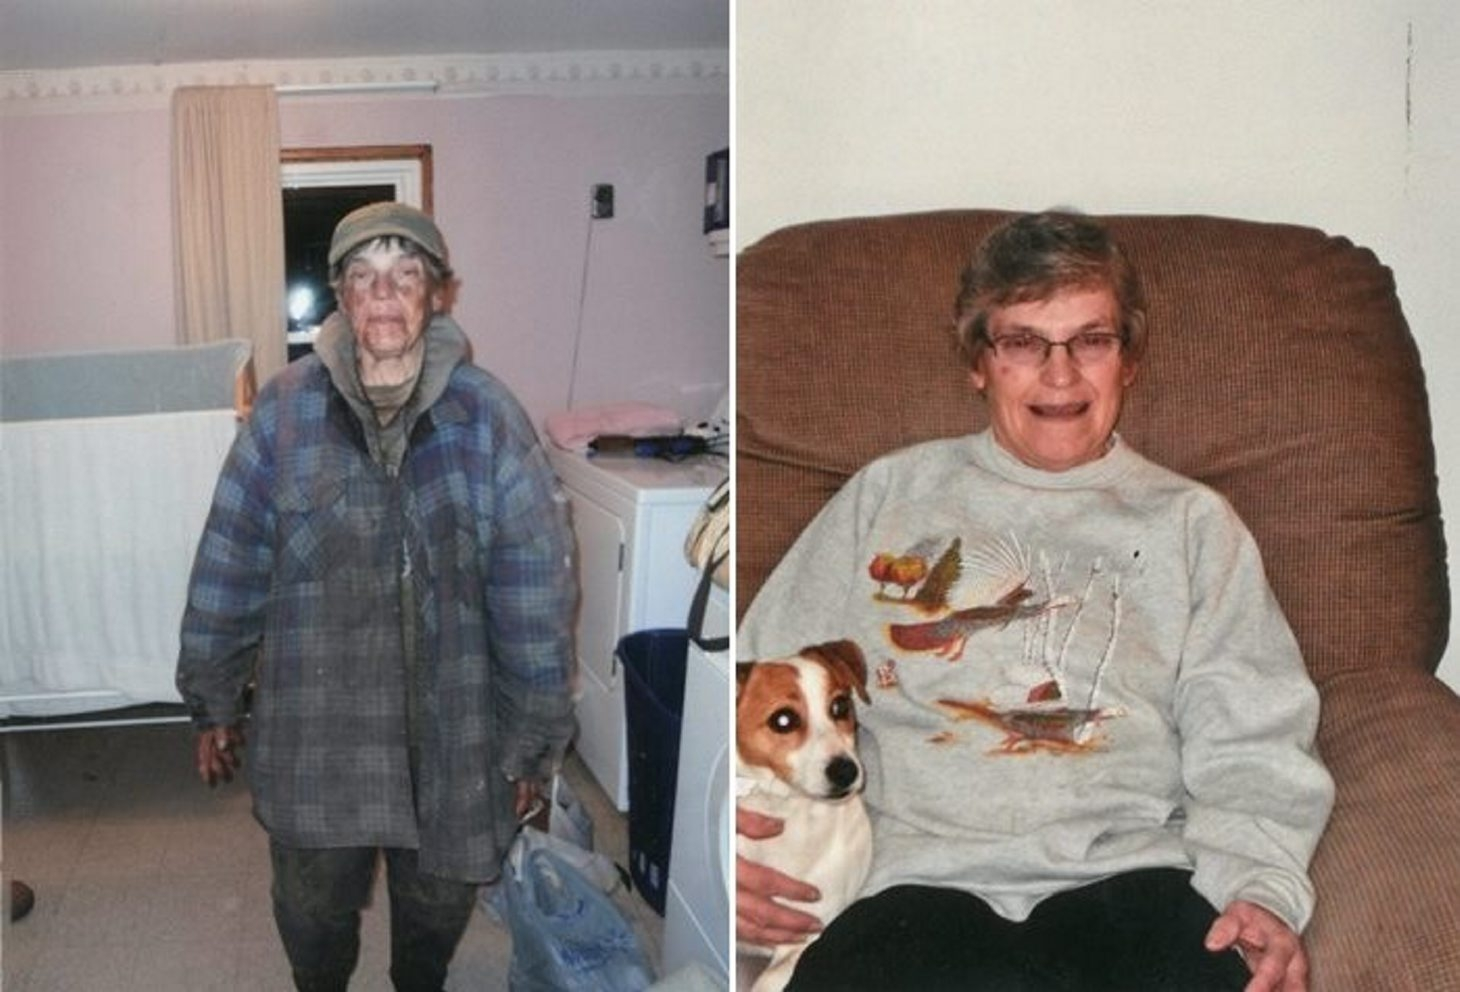 In October 2013, Mary Lou Steff, left, appeared at her nephew's home in worn clothing with her face covered in grime. By December, right, her hair had been styled and she had new glasses.